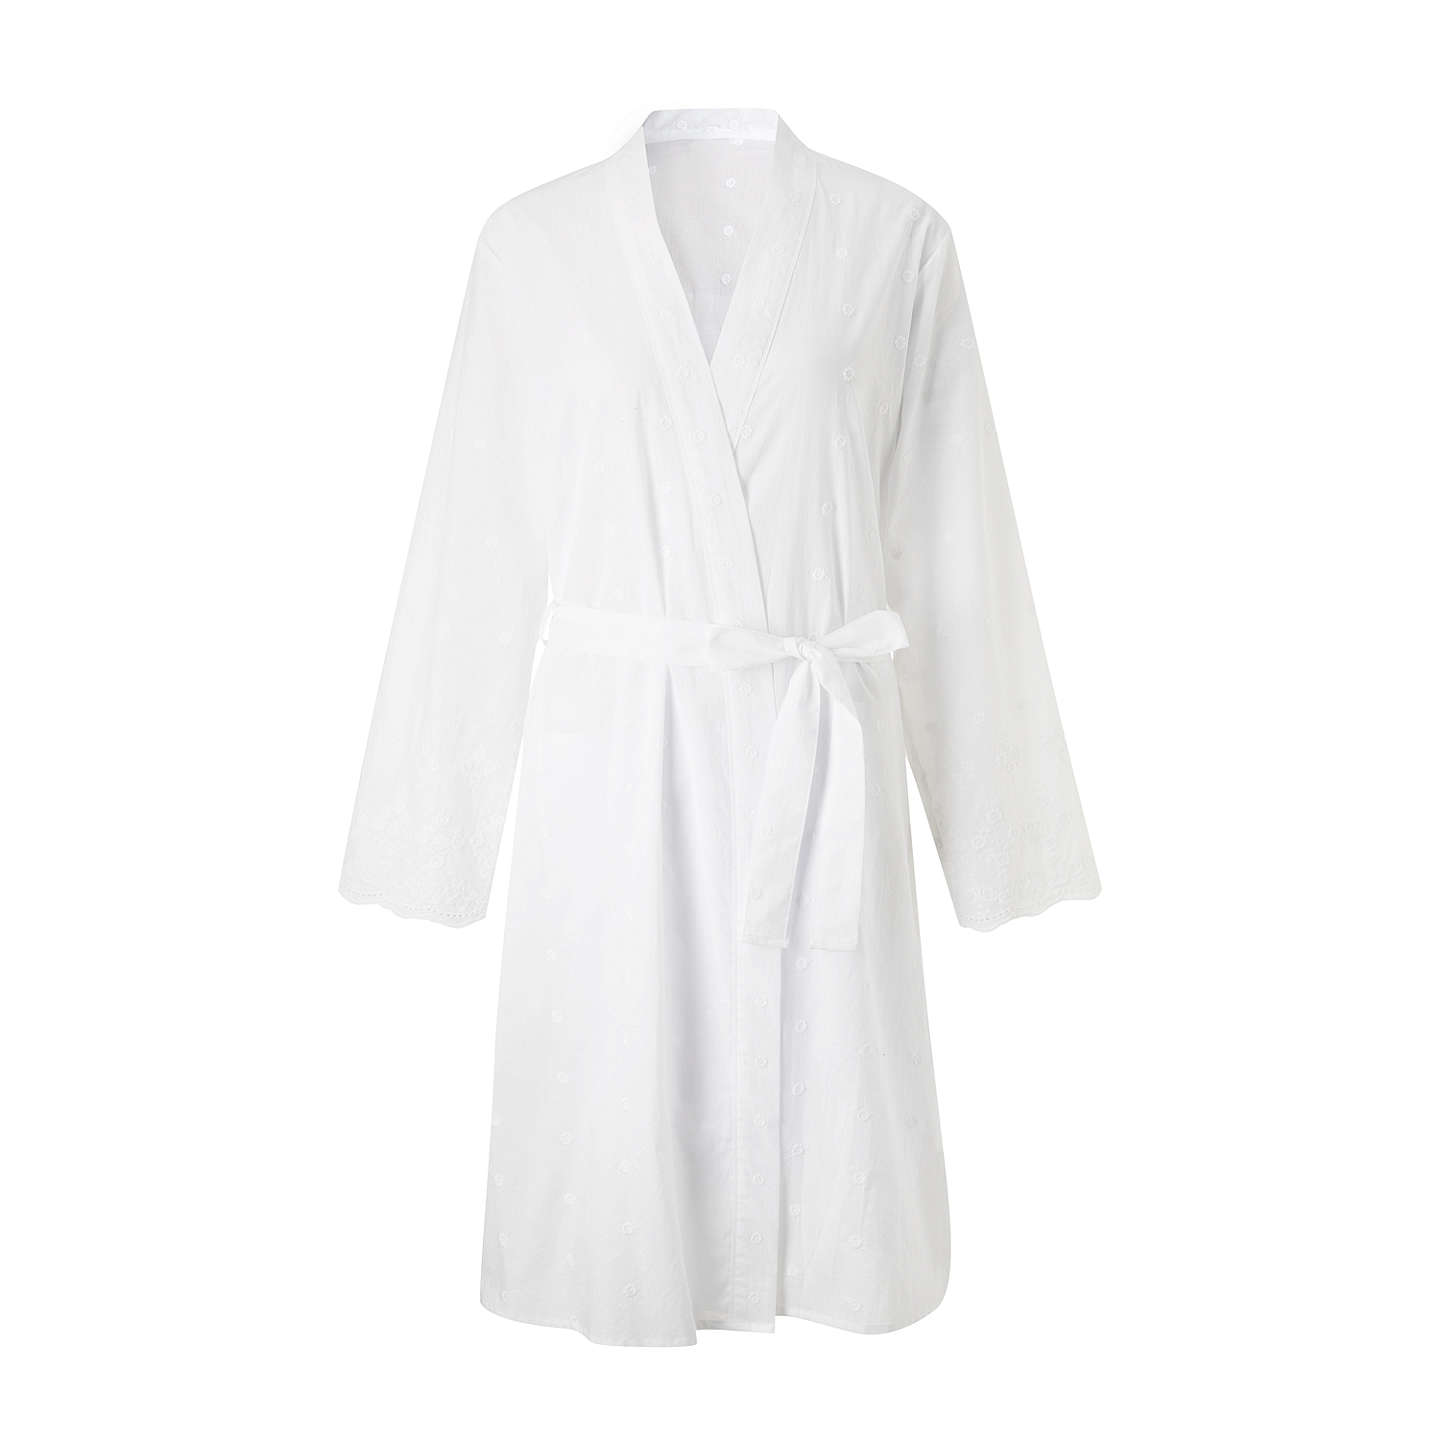 John Lewis Broderie Anglaise Cotton Dressing Gown, White at John Lewis